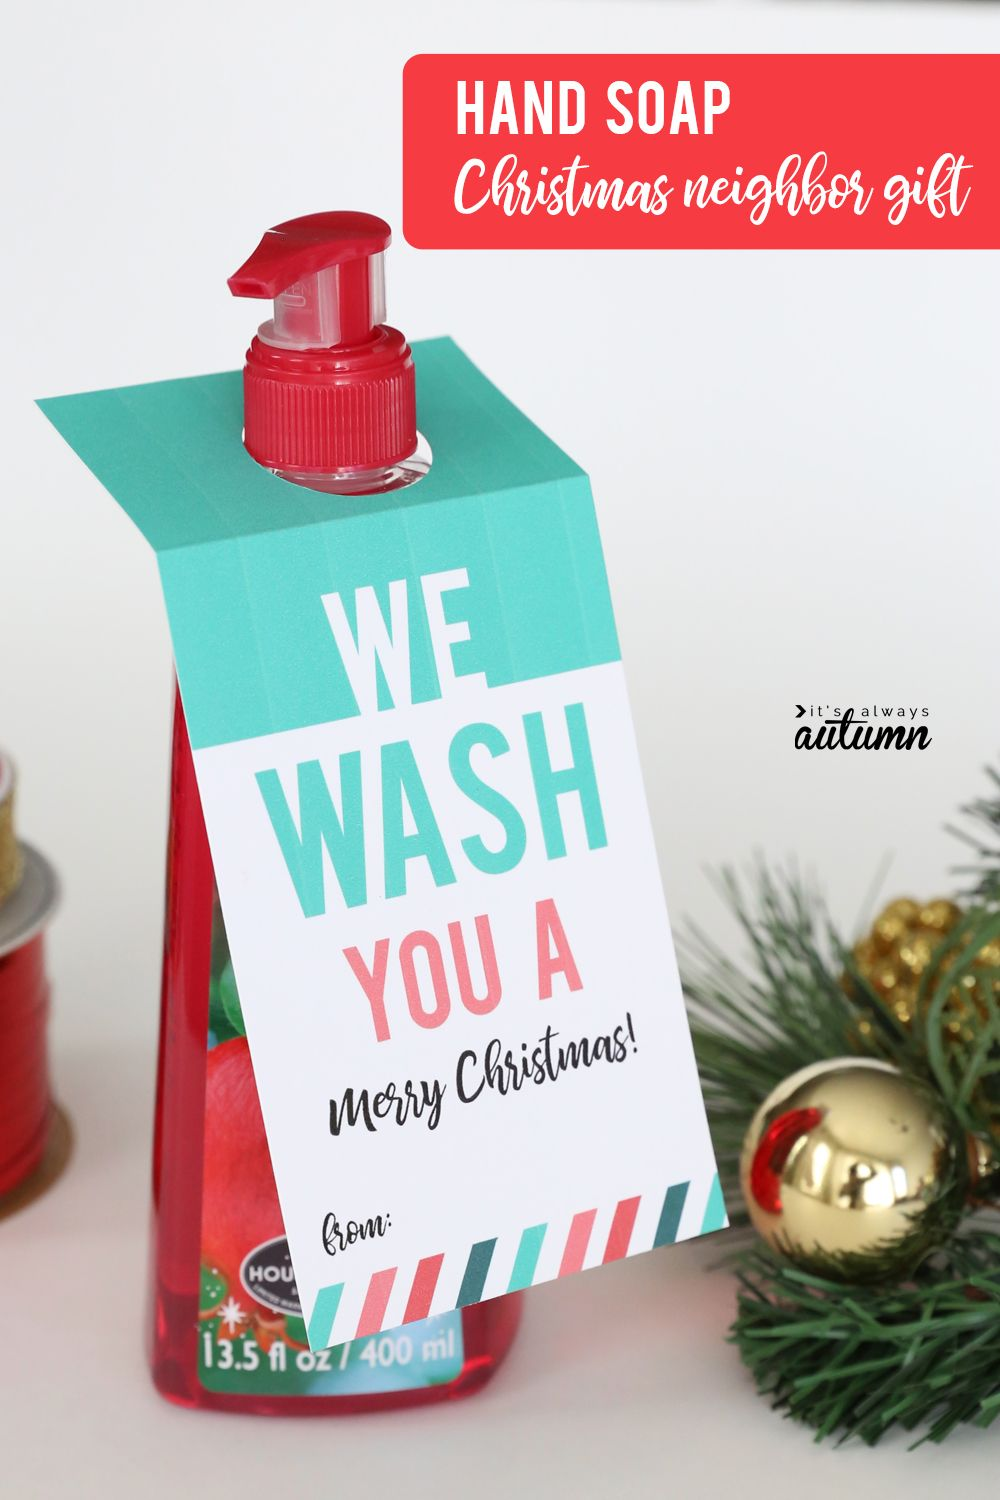 17 super easy Christmas neighbor gifts w/printable tags